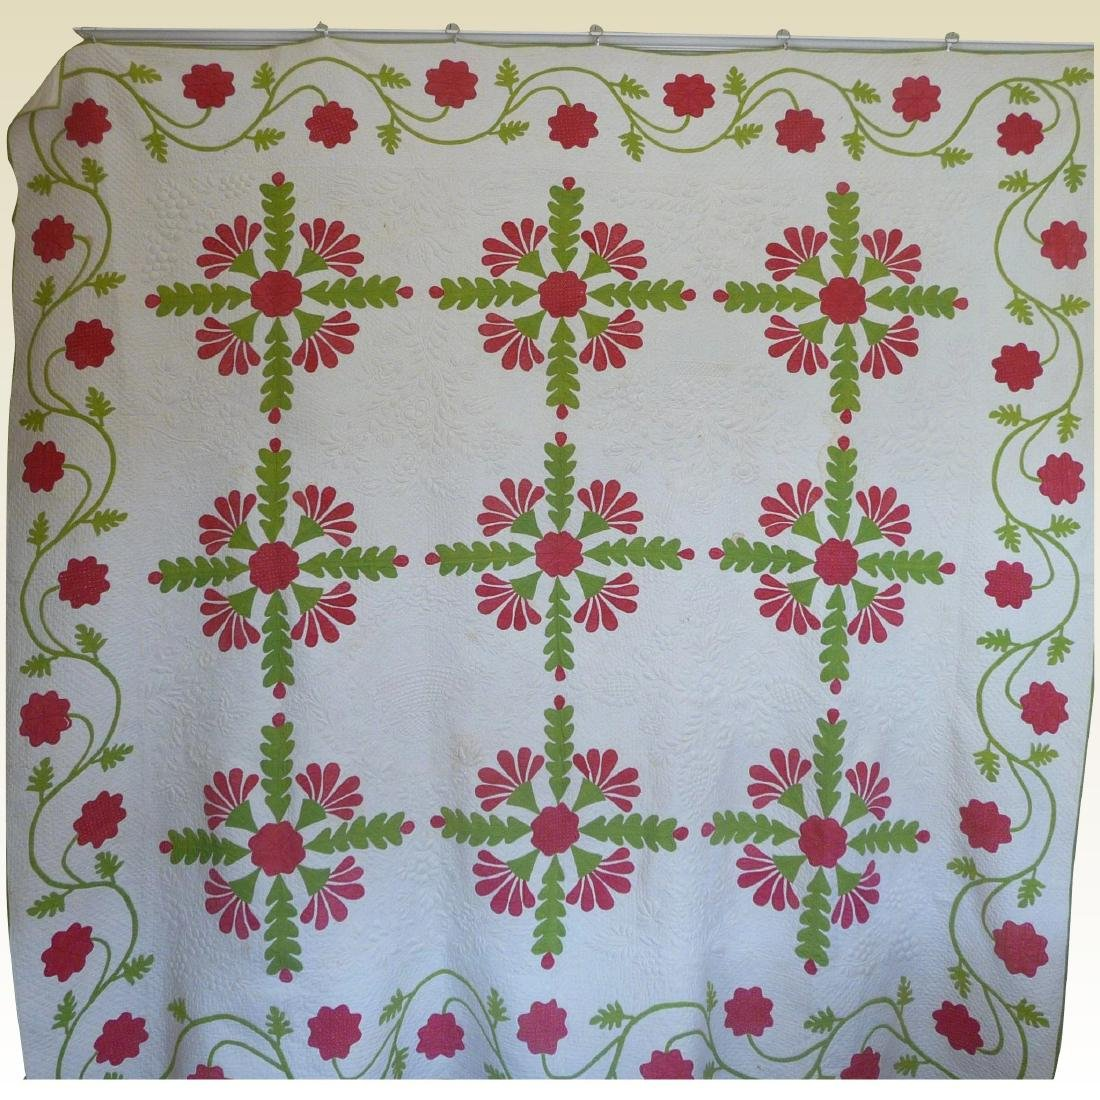 Trapunto Applique Quilt Exquisite Initialed 1800's